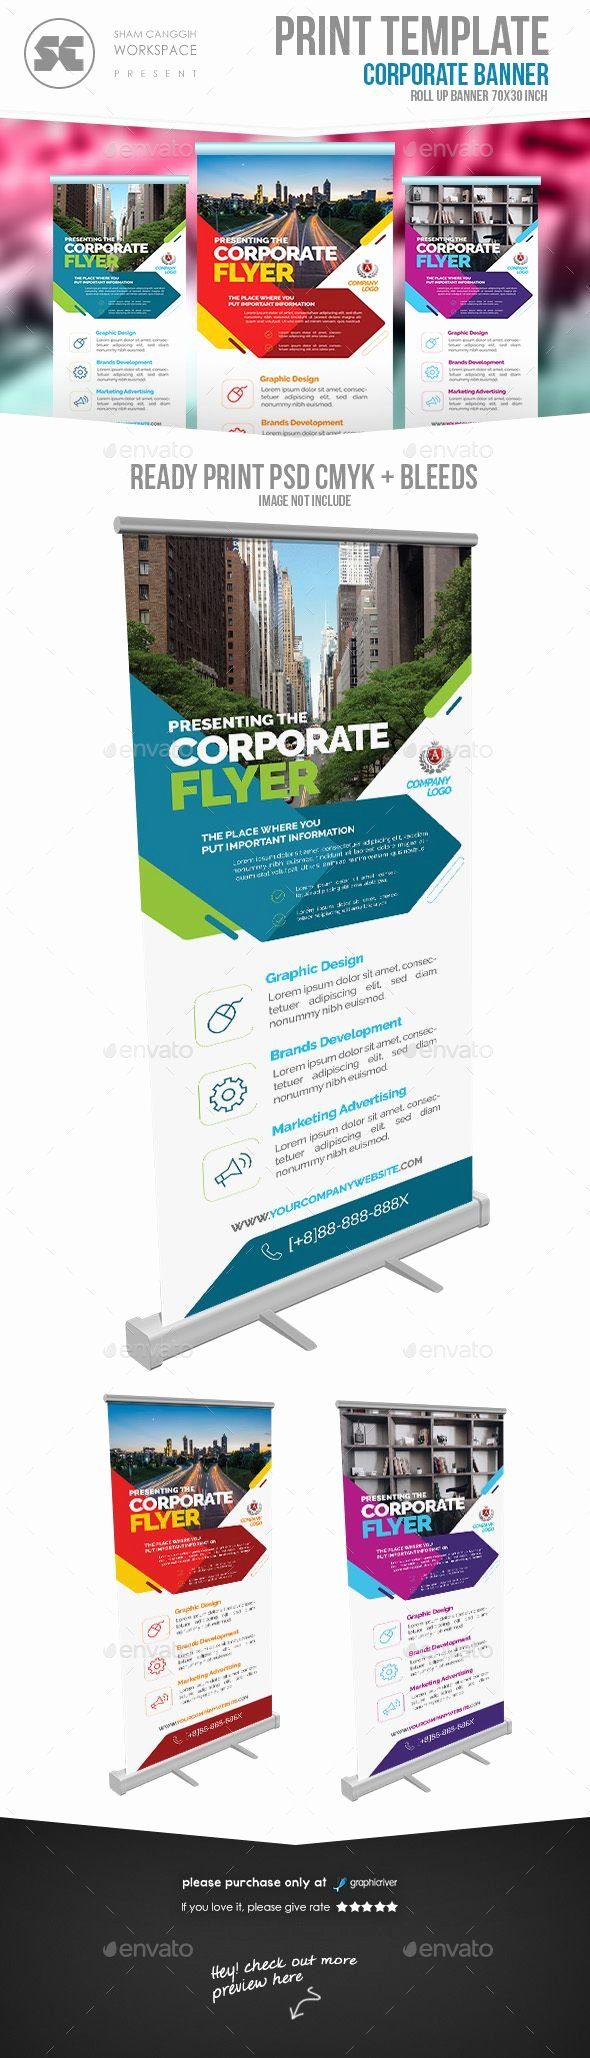 Retractable Banner Template Psd Awesome Corporate Roll Up Banner Signage Print Templates